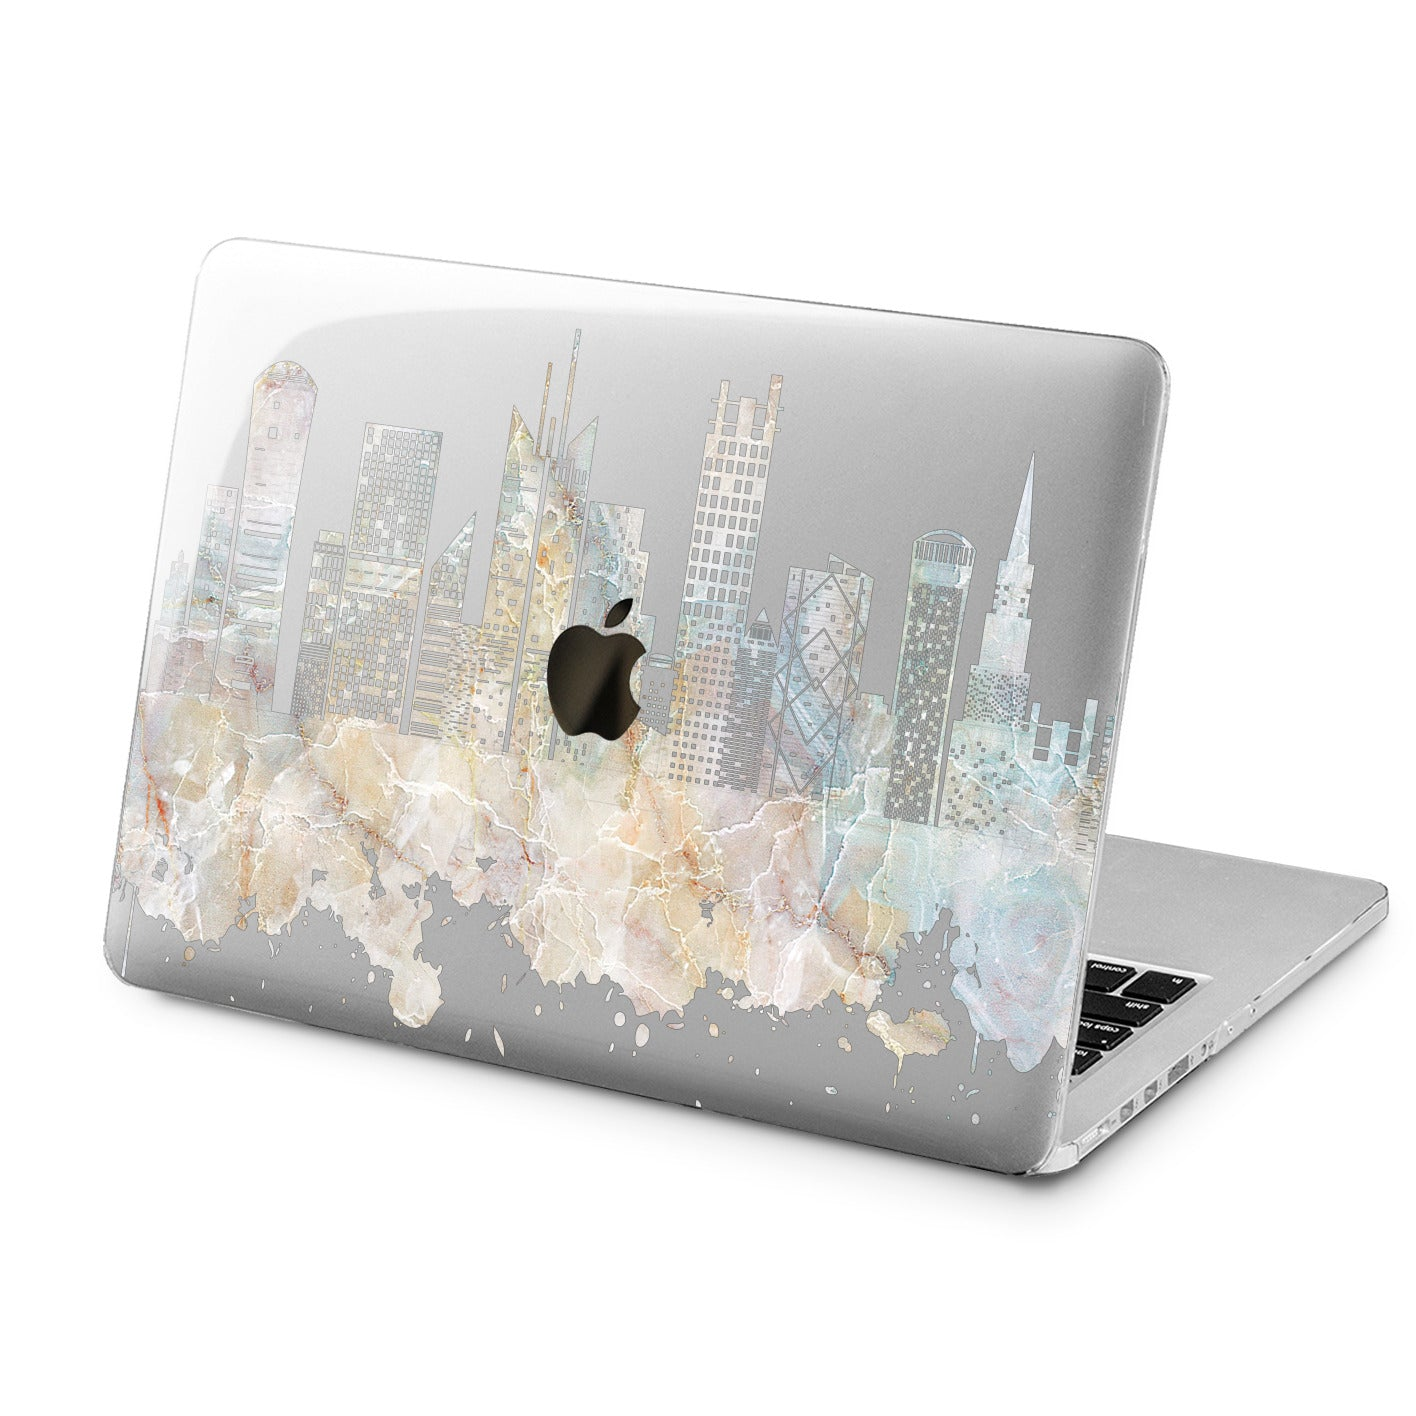 Lex Altern Lex Altern Urban Theme Case for your Laptop Apple Macbook.